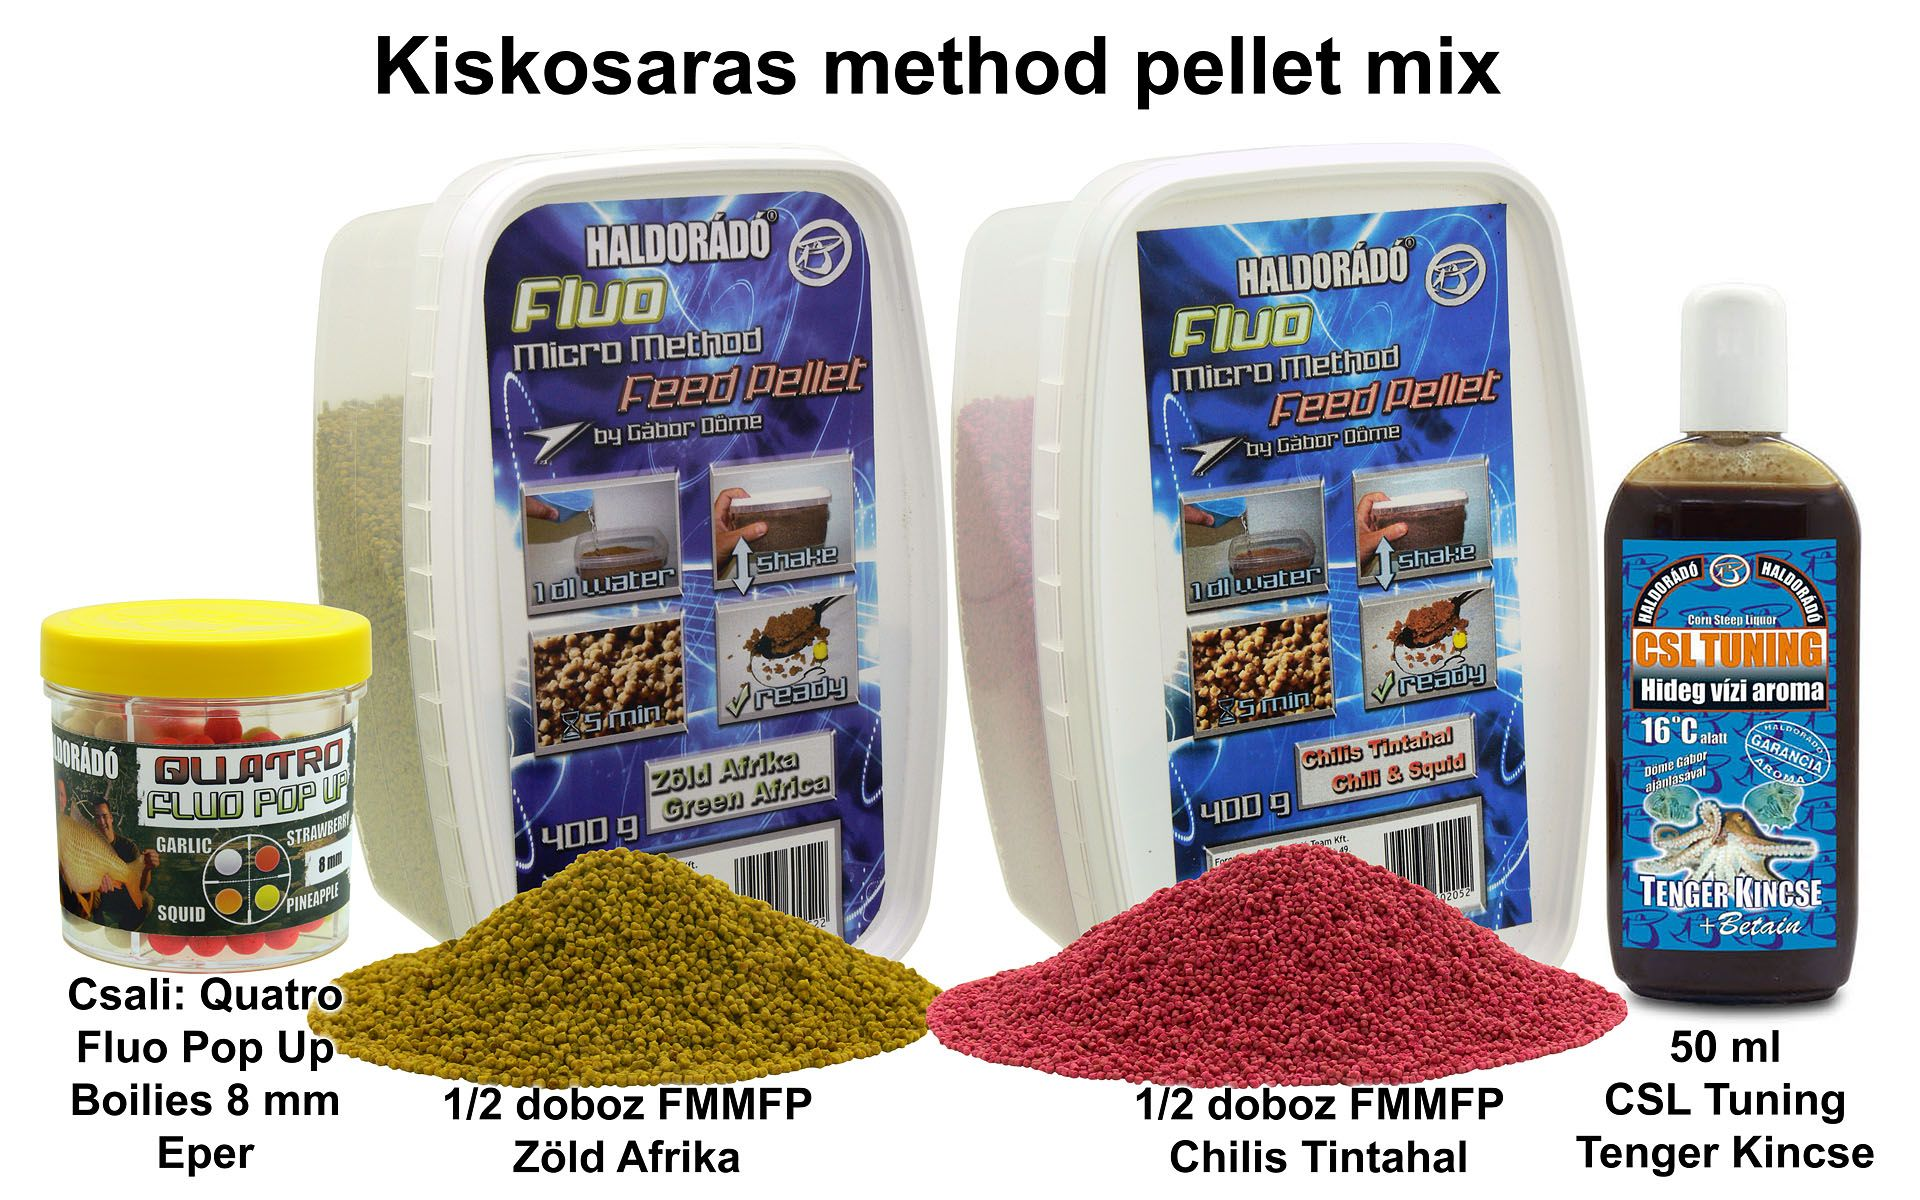 Kiskosaras method pellet mix